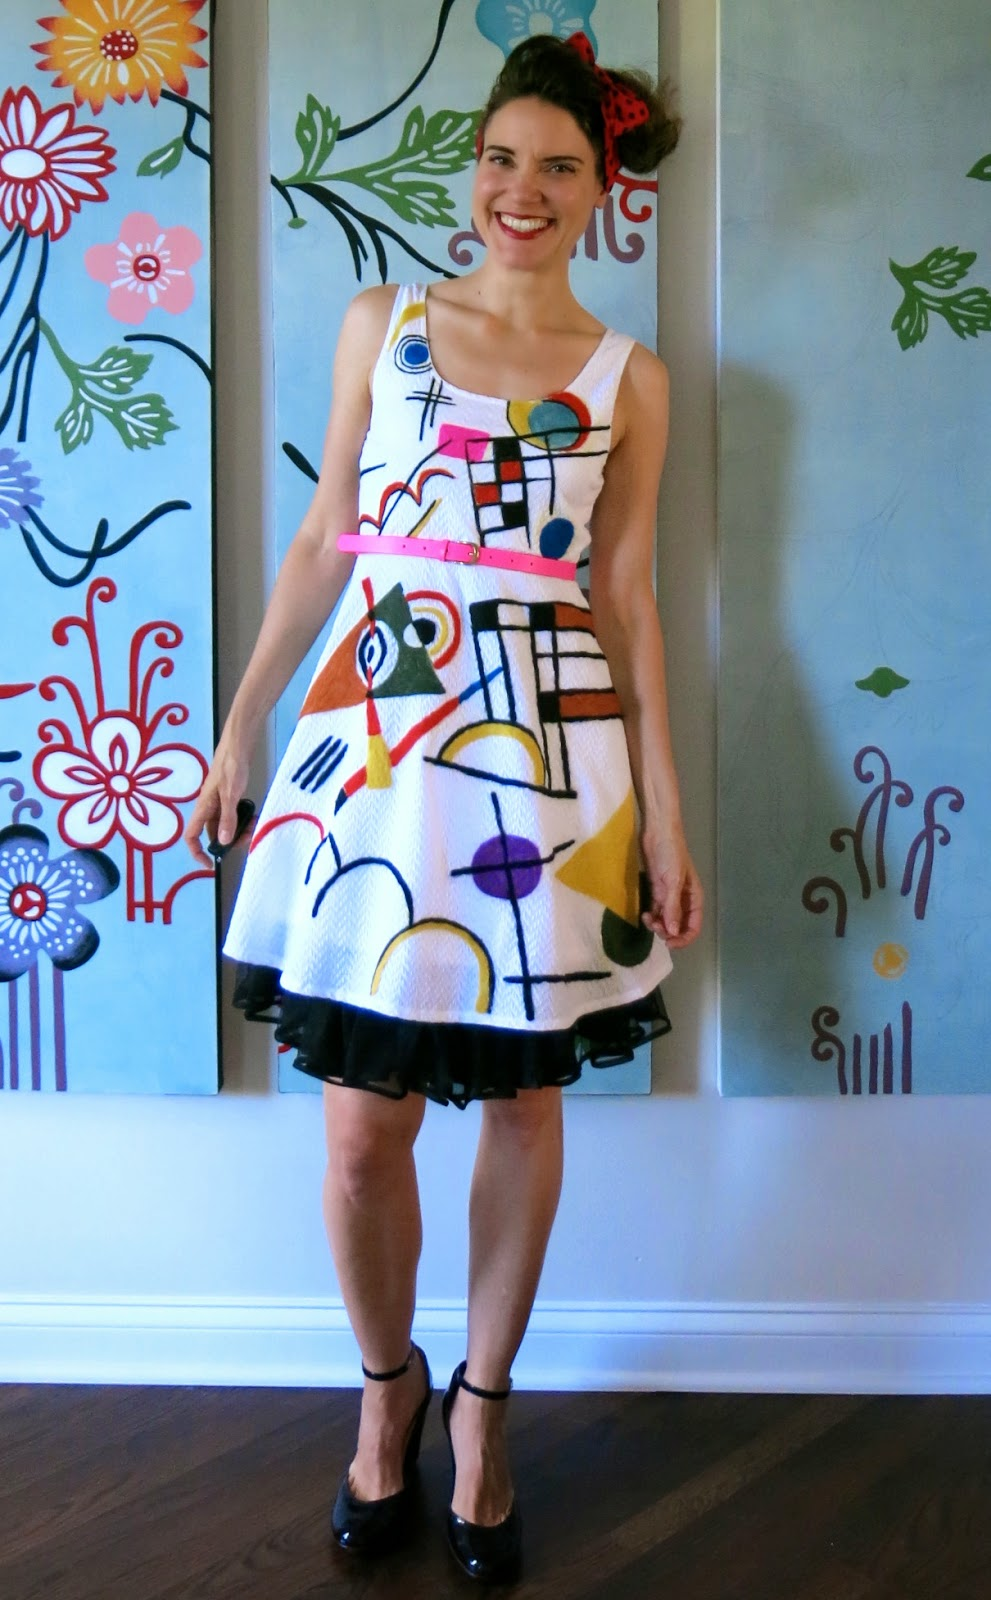 beautiful outfits for art age